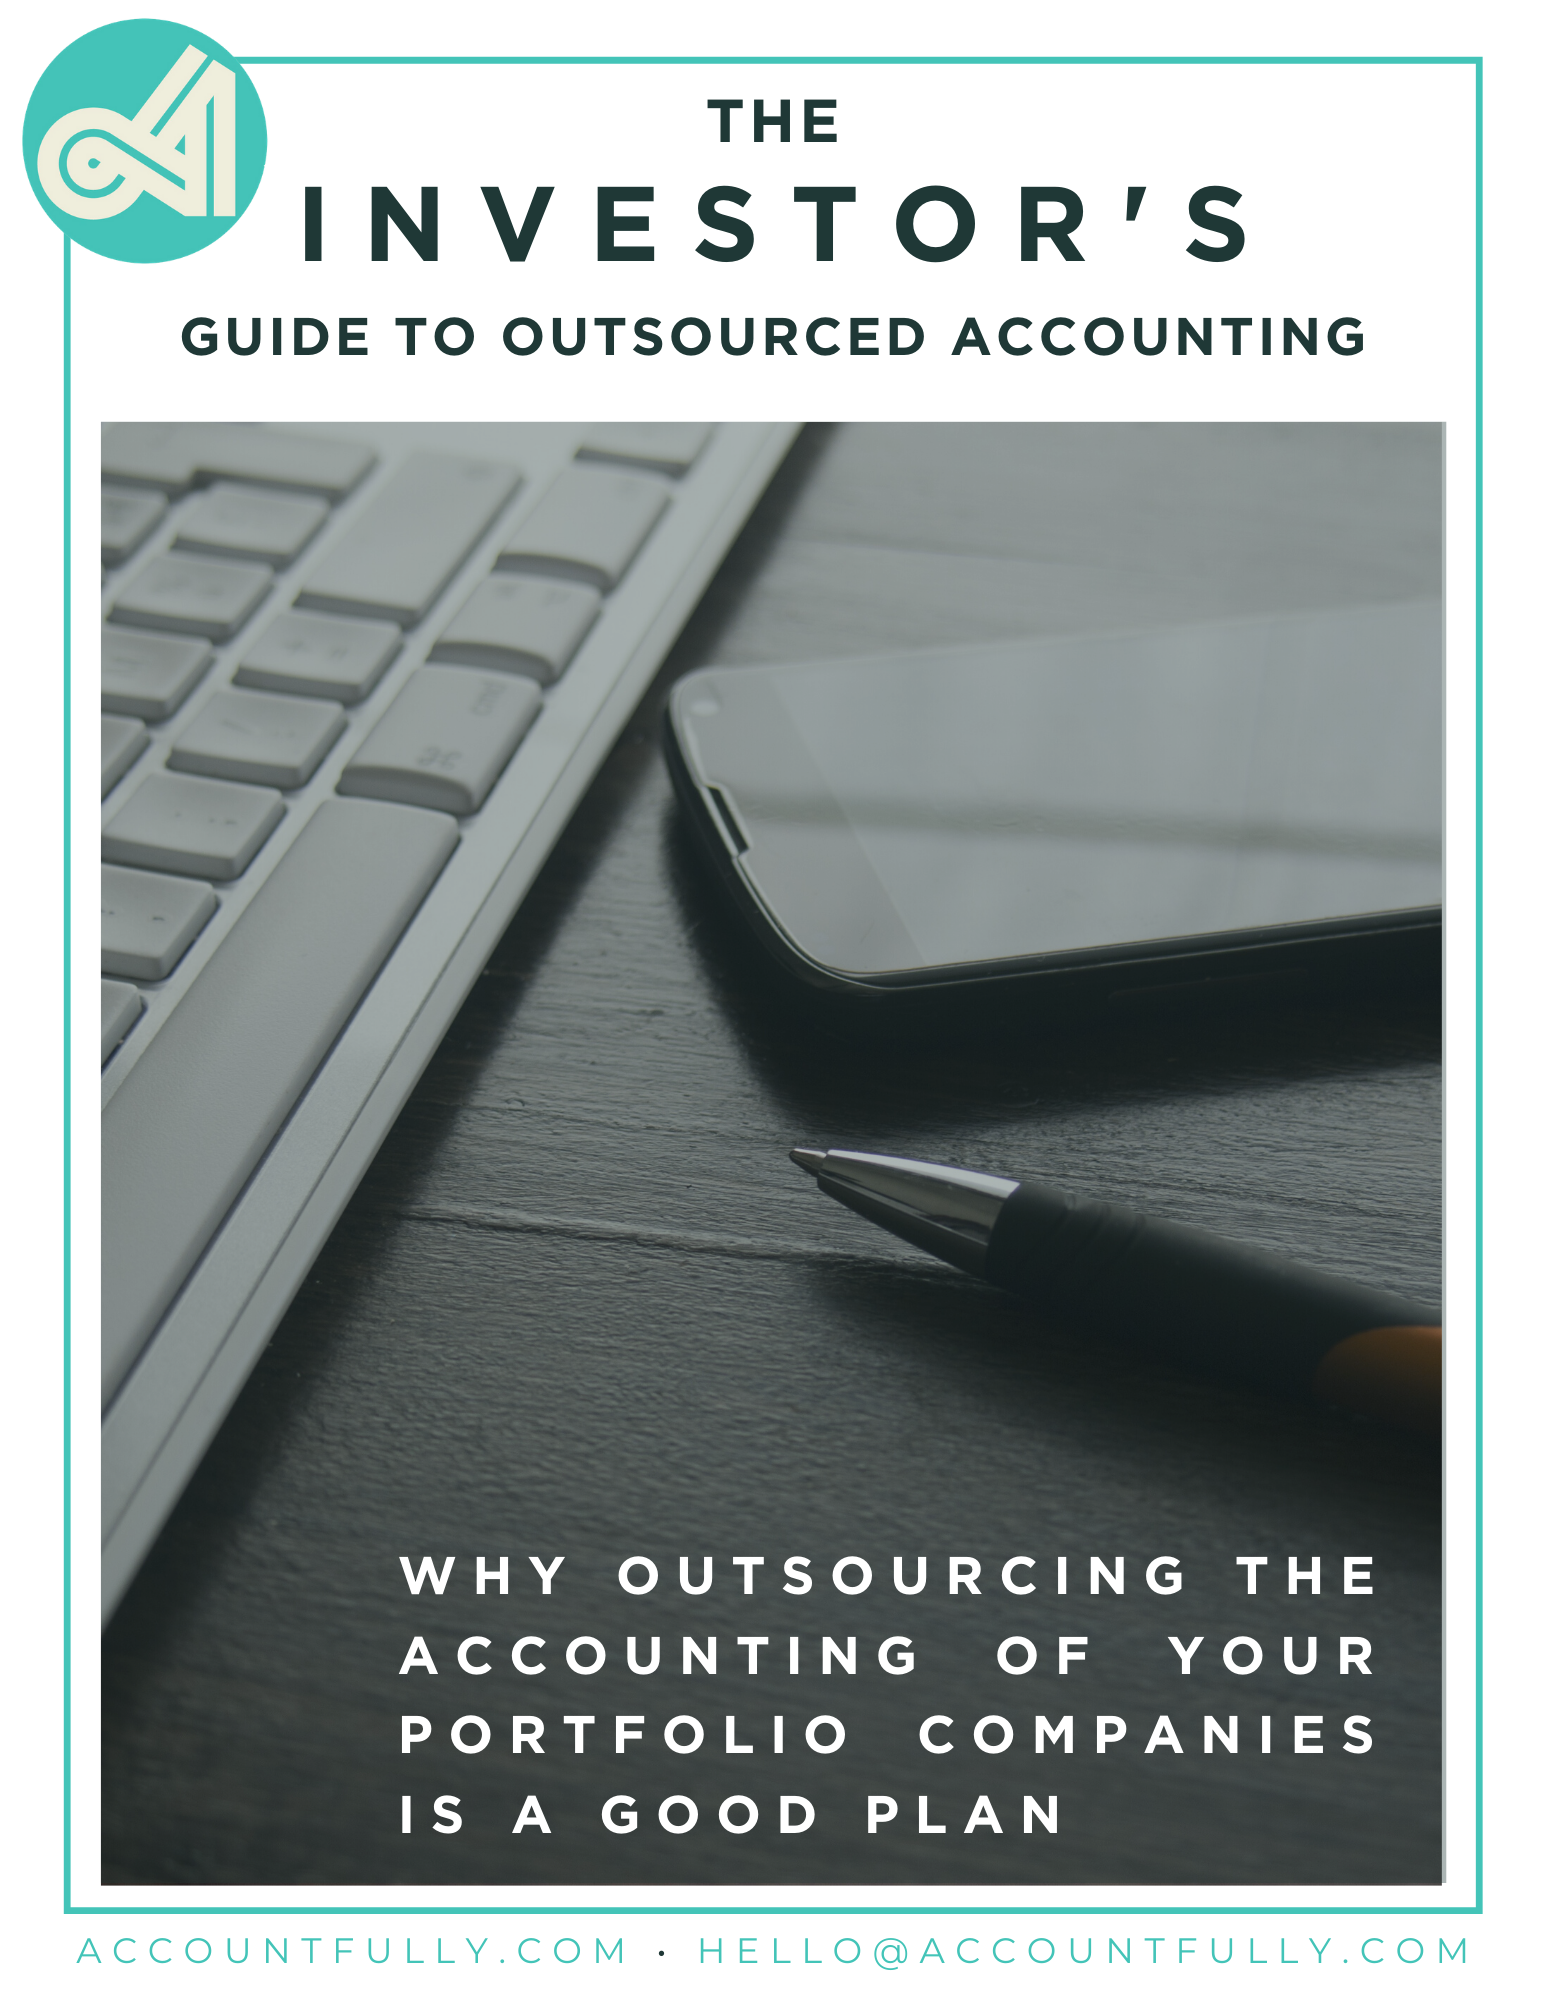 The Investor's Guide to Outsourced Accounting